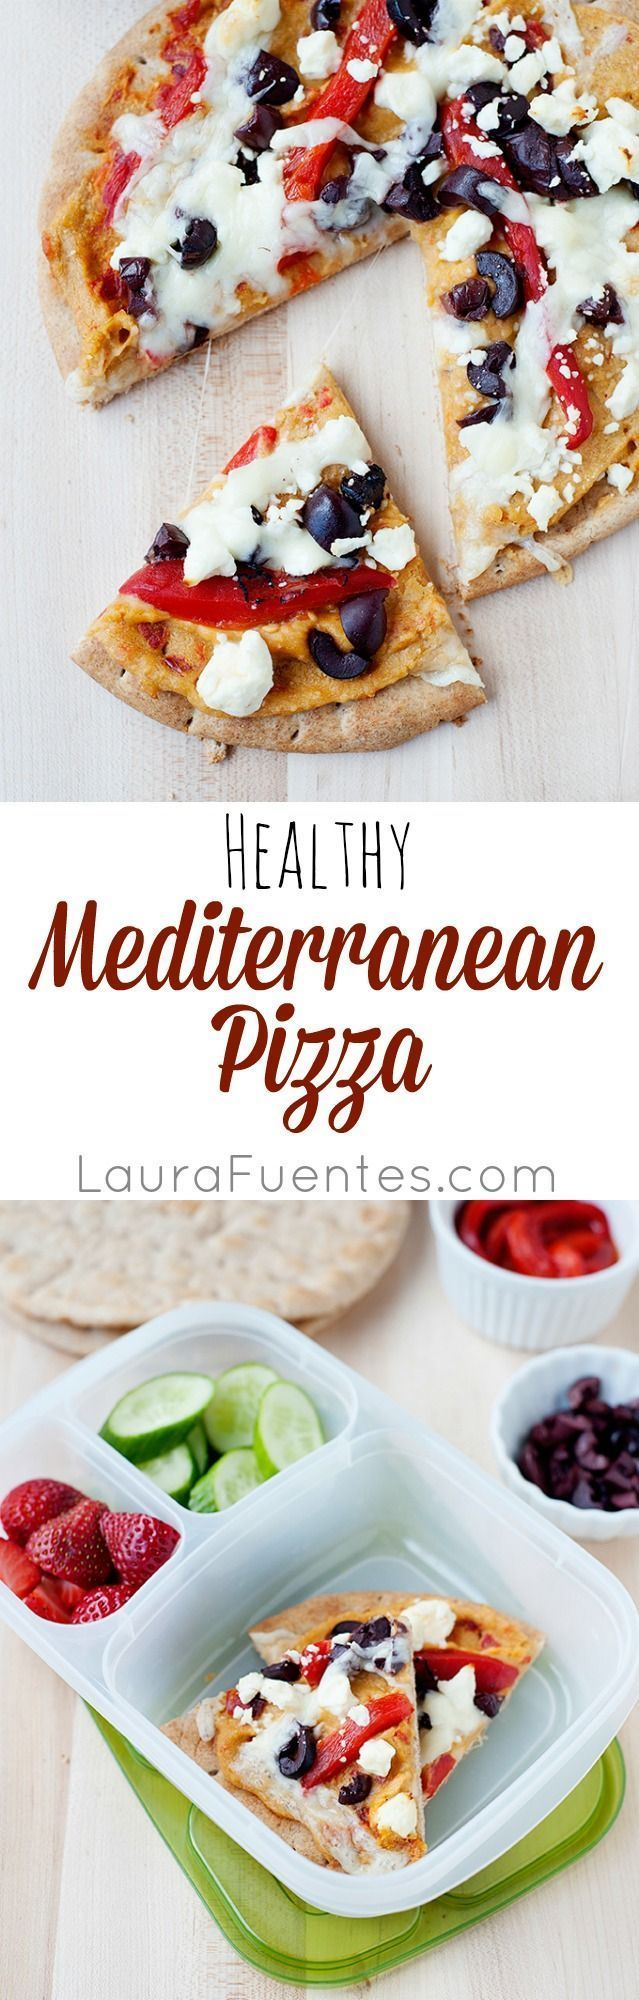 Mediterranean Hummus Pizza: Healthy and delicious pizzas made with hummus and all your favorite toppings. #easylunchboxes #pizza #lunch #lunchbox #lunchideas